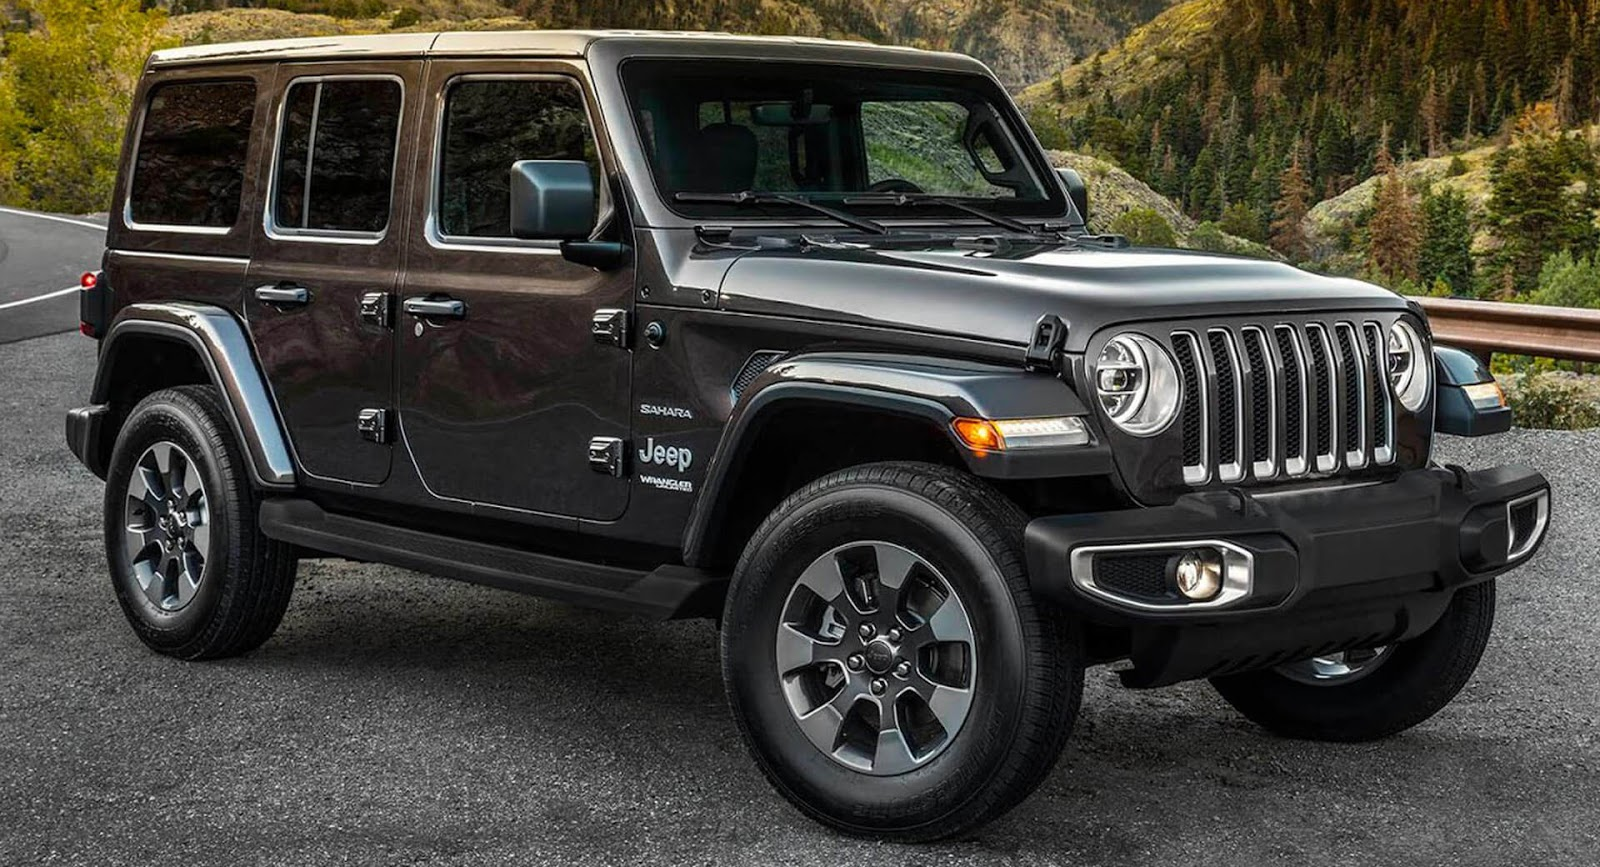 Jeep Jl Wrangler >> The Front Fender Vents On The 2018 Jeep Wrangler Serve A Unique Purpose